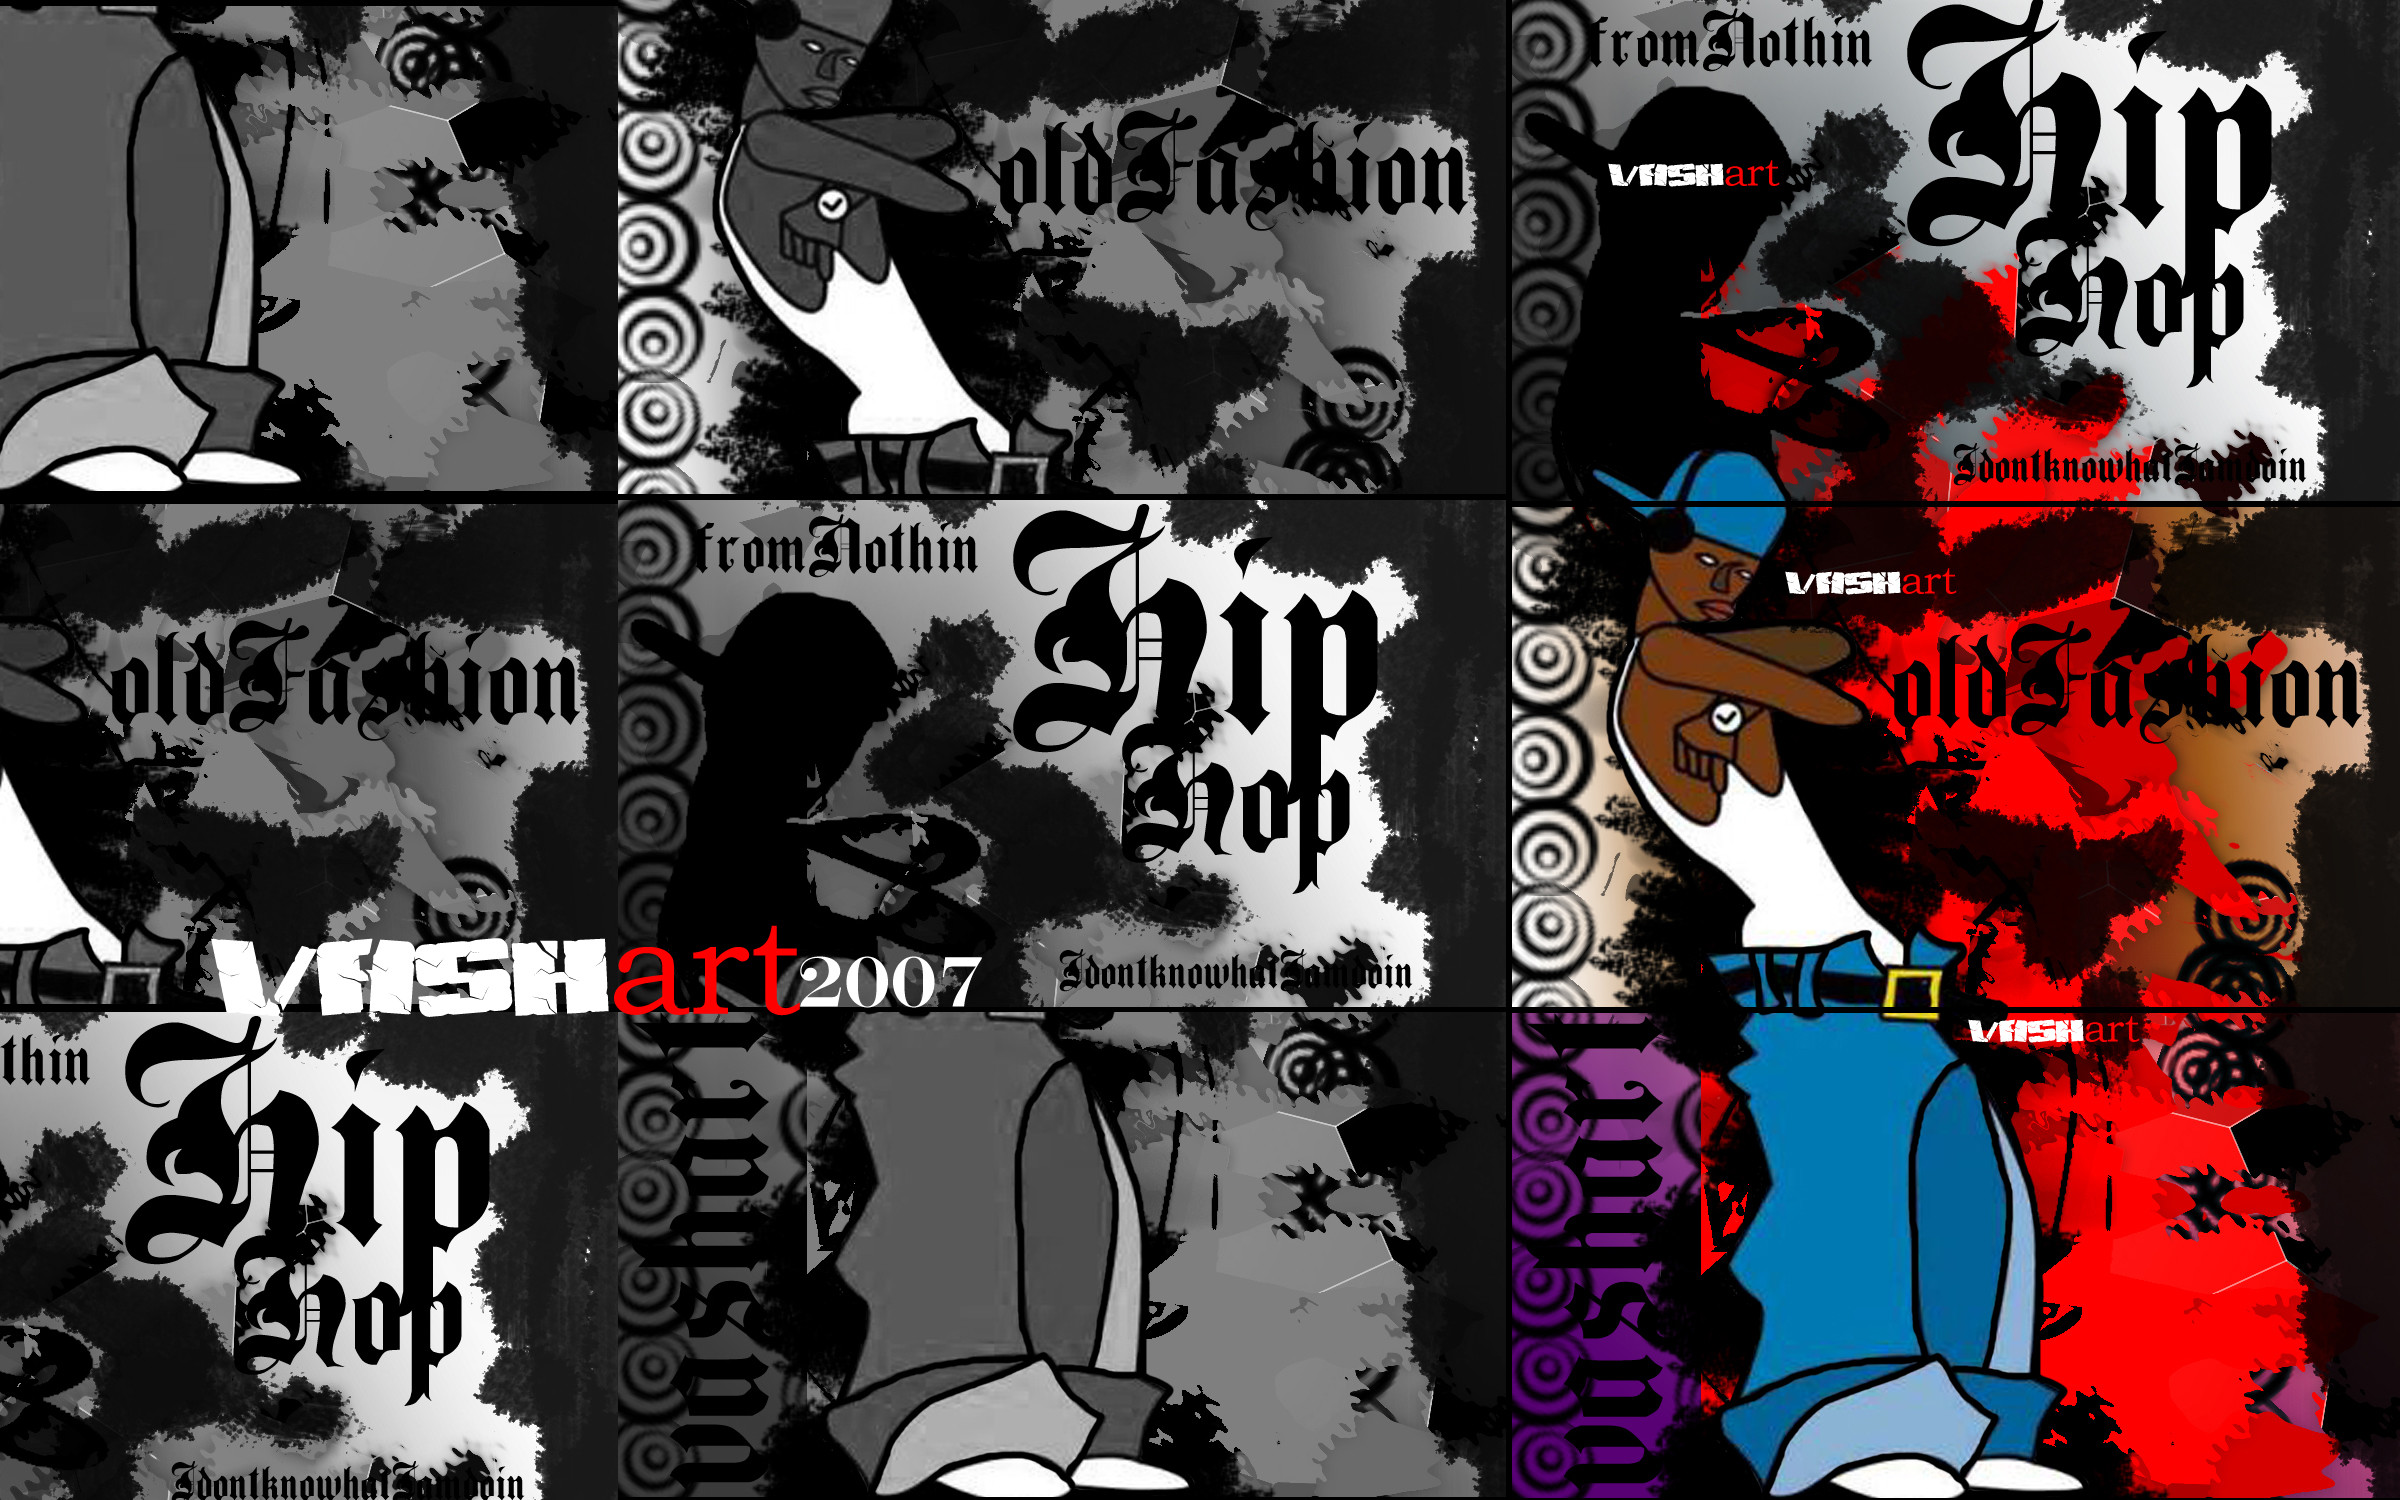 Download wallpaper, cool wallpaper, cool hip hop